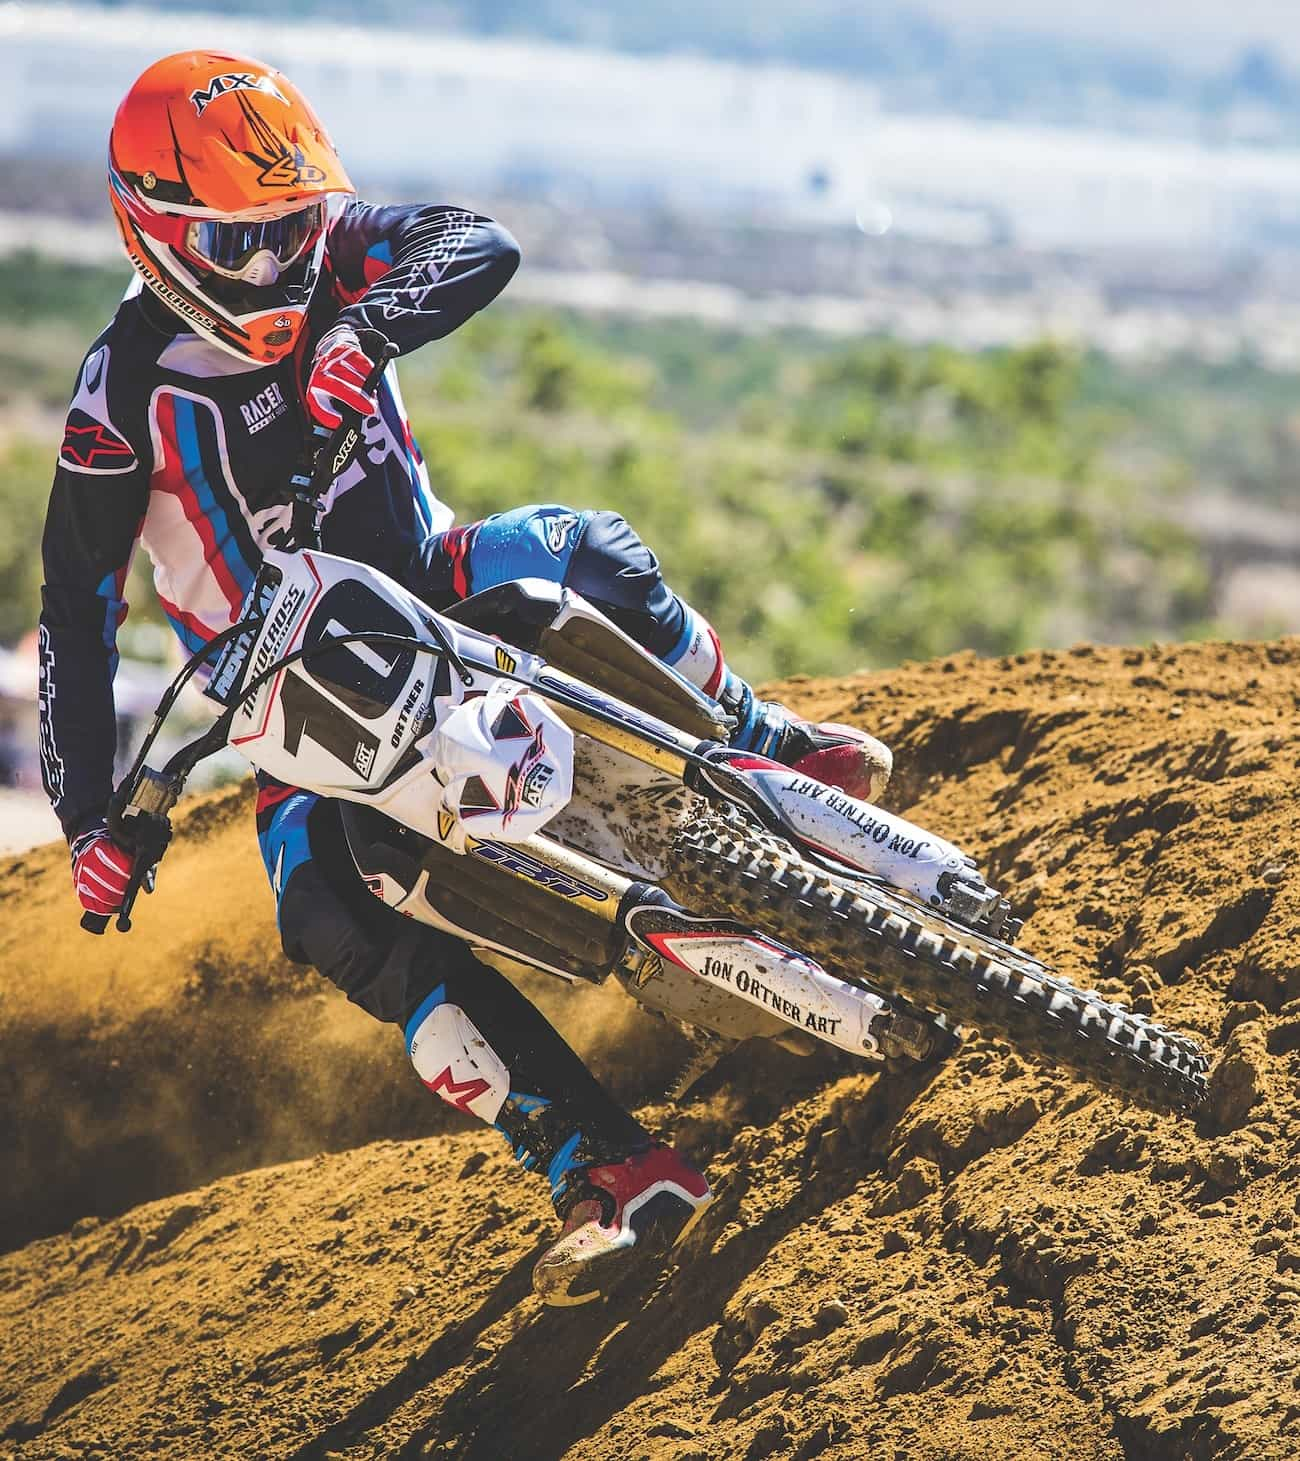 FORK WORKS: TBT RACING'S KAYABA SSS VET MX SETUP | Motocross Action